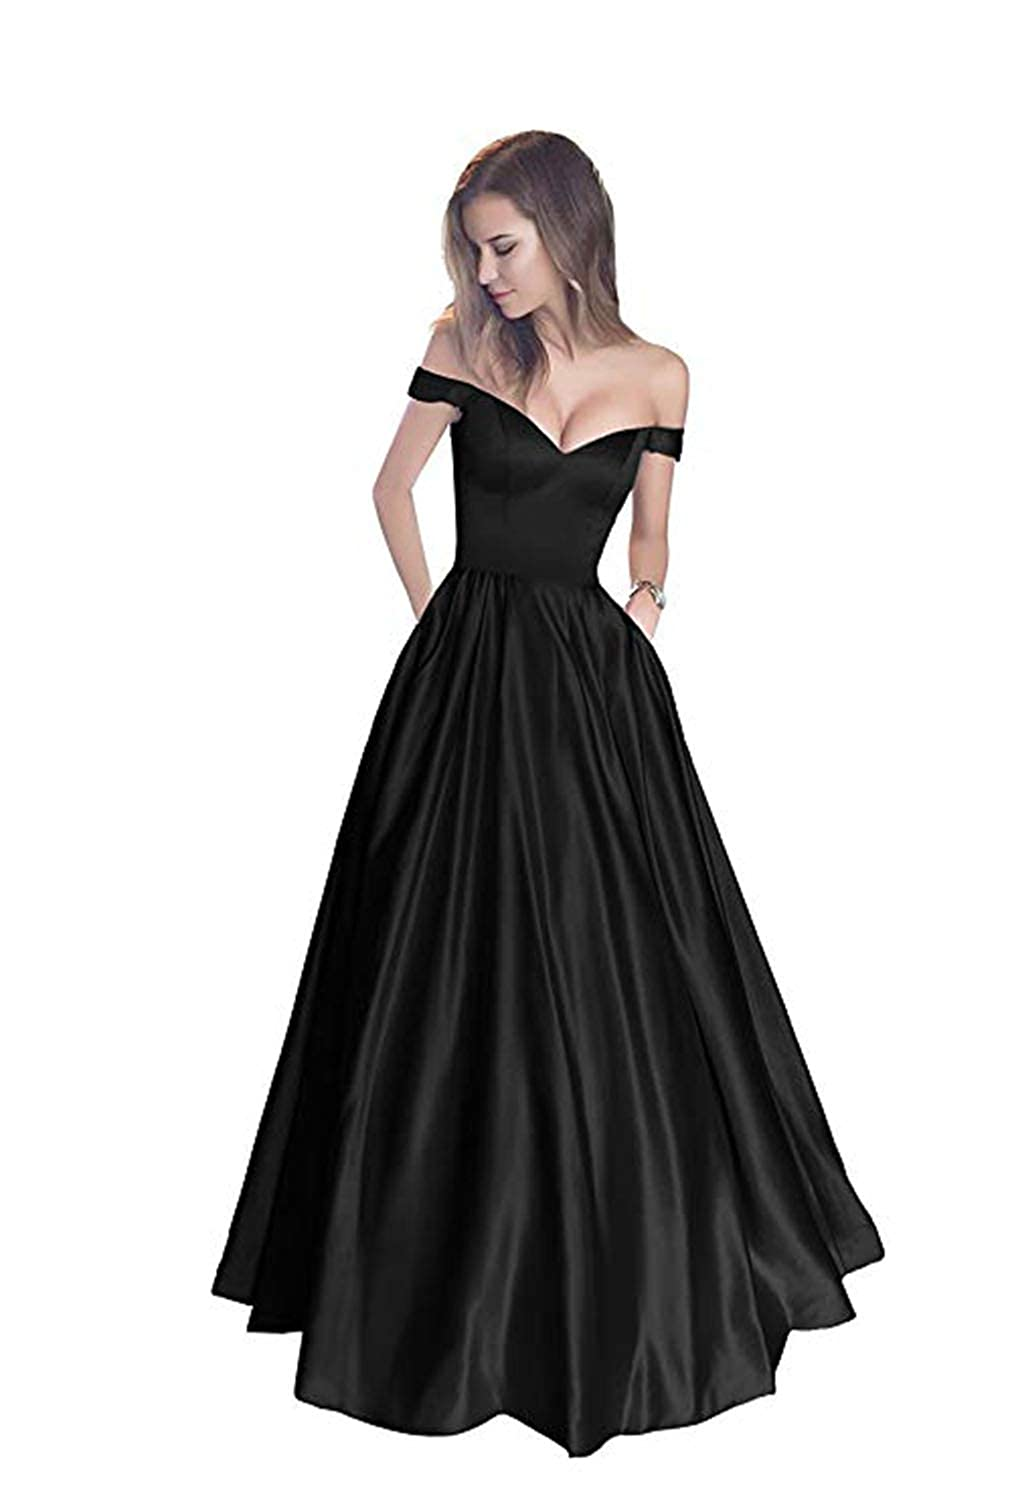 Black without Belt FJMM Womens Off The Shoulder Beaded ALine Prom Dress for Party